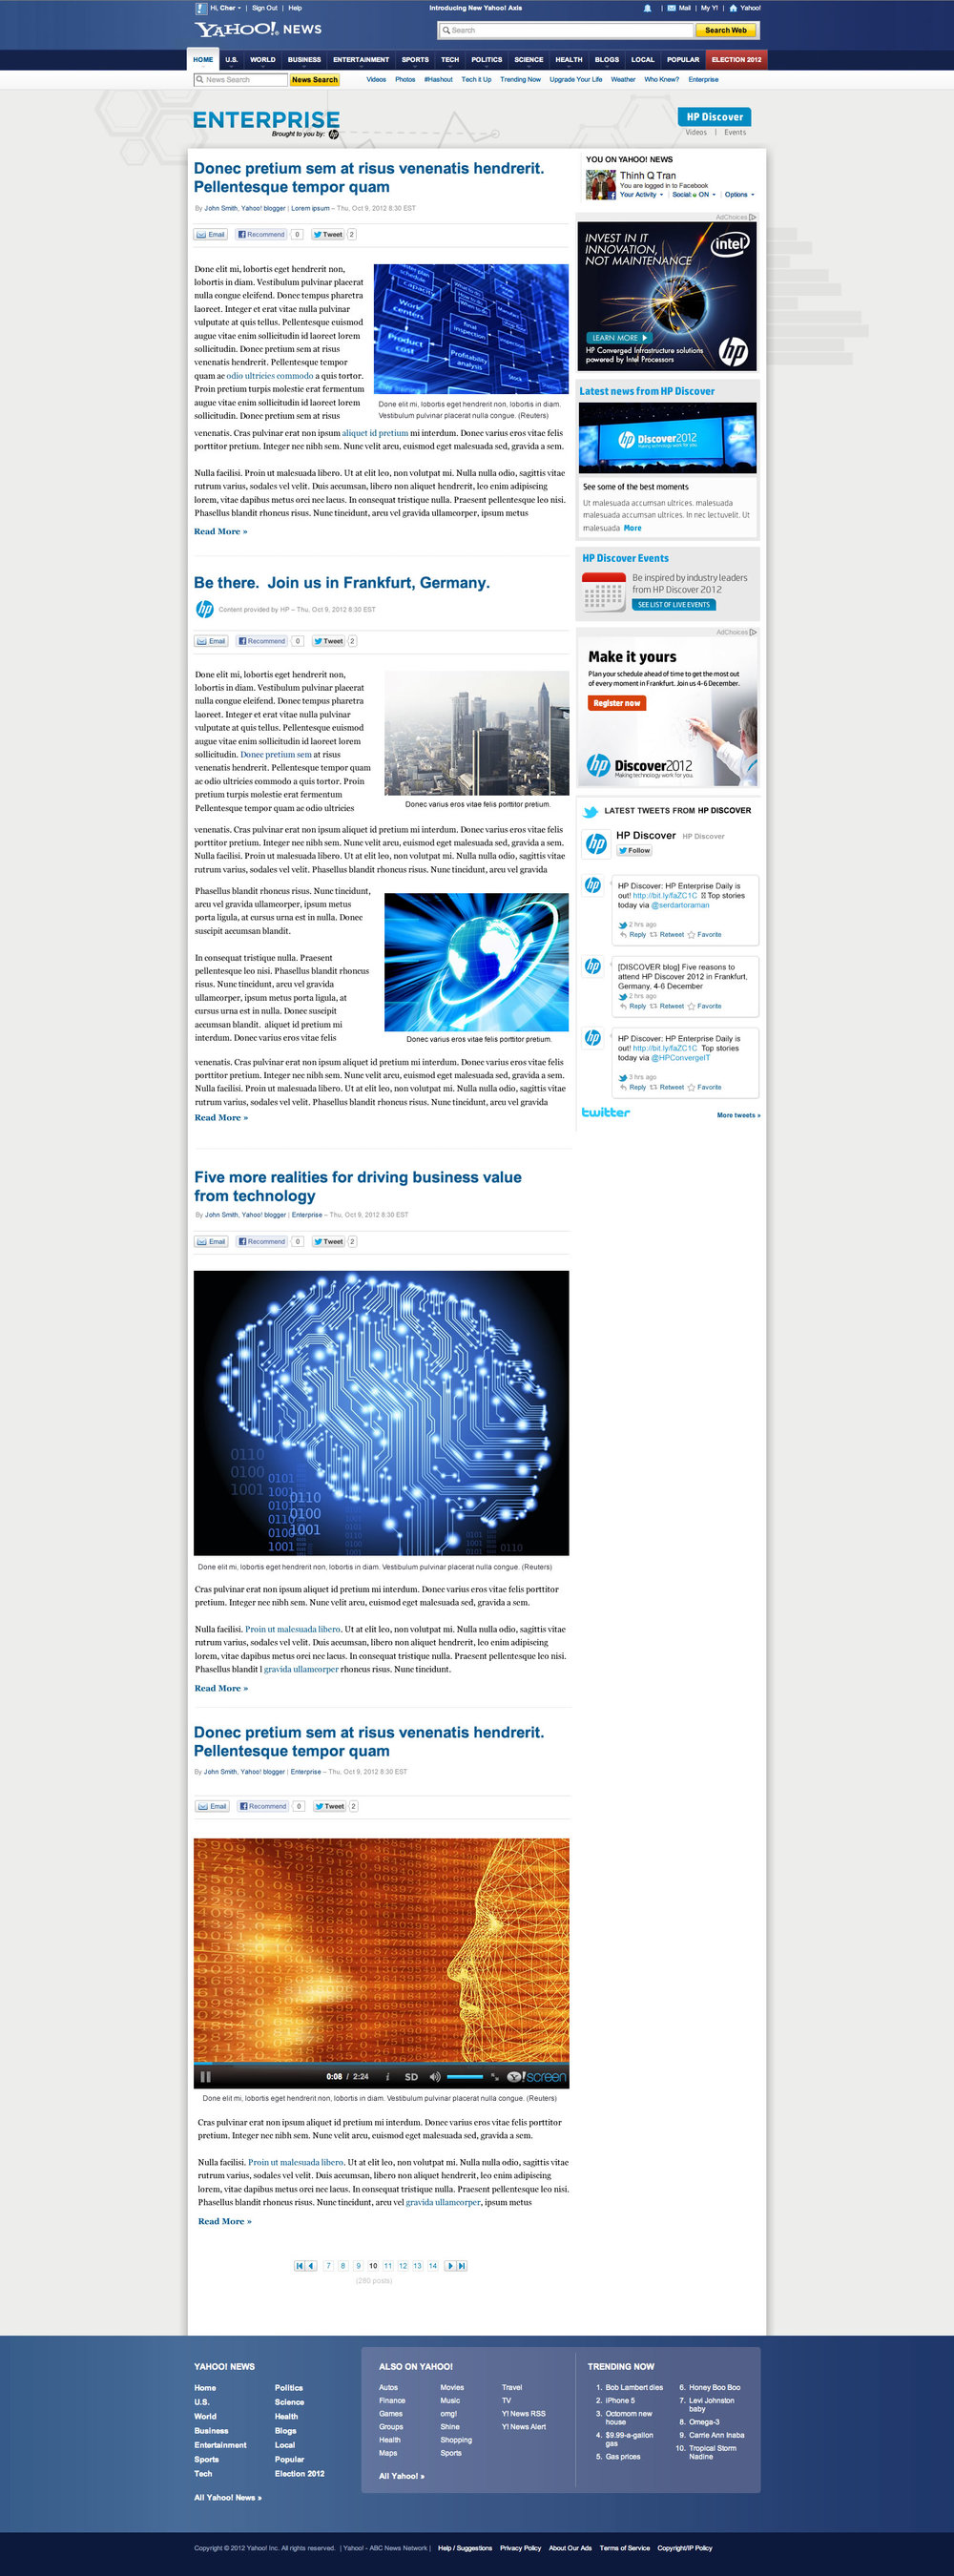 HPdiscover_blogpage-index.jpg